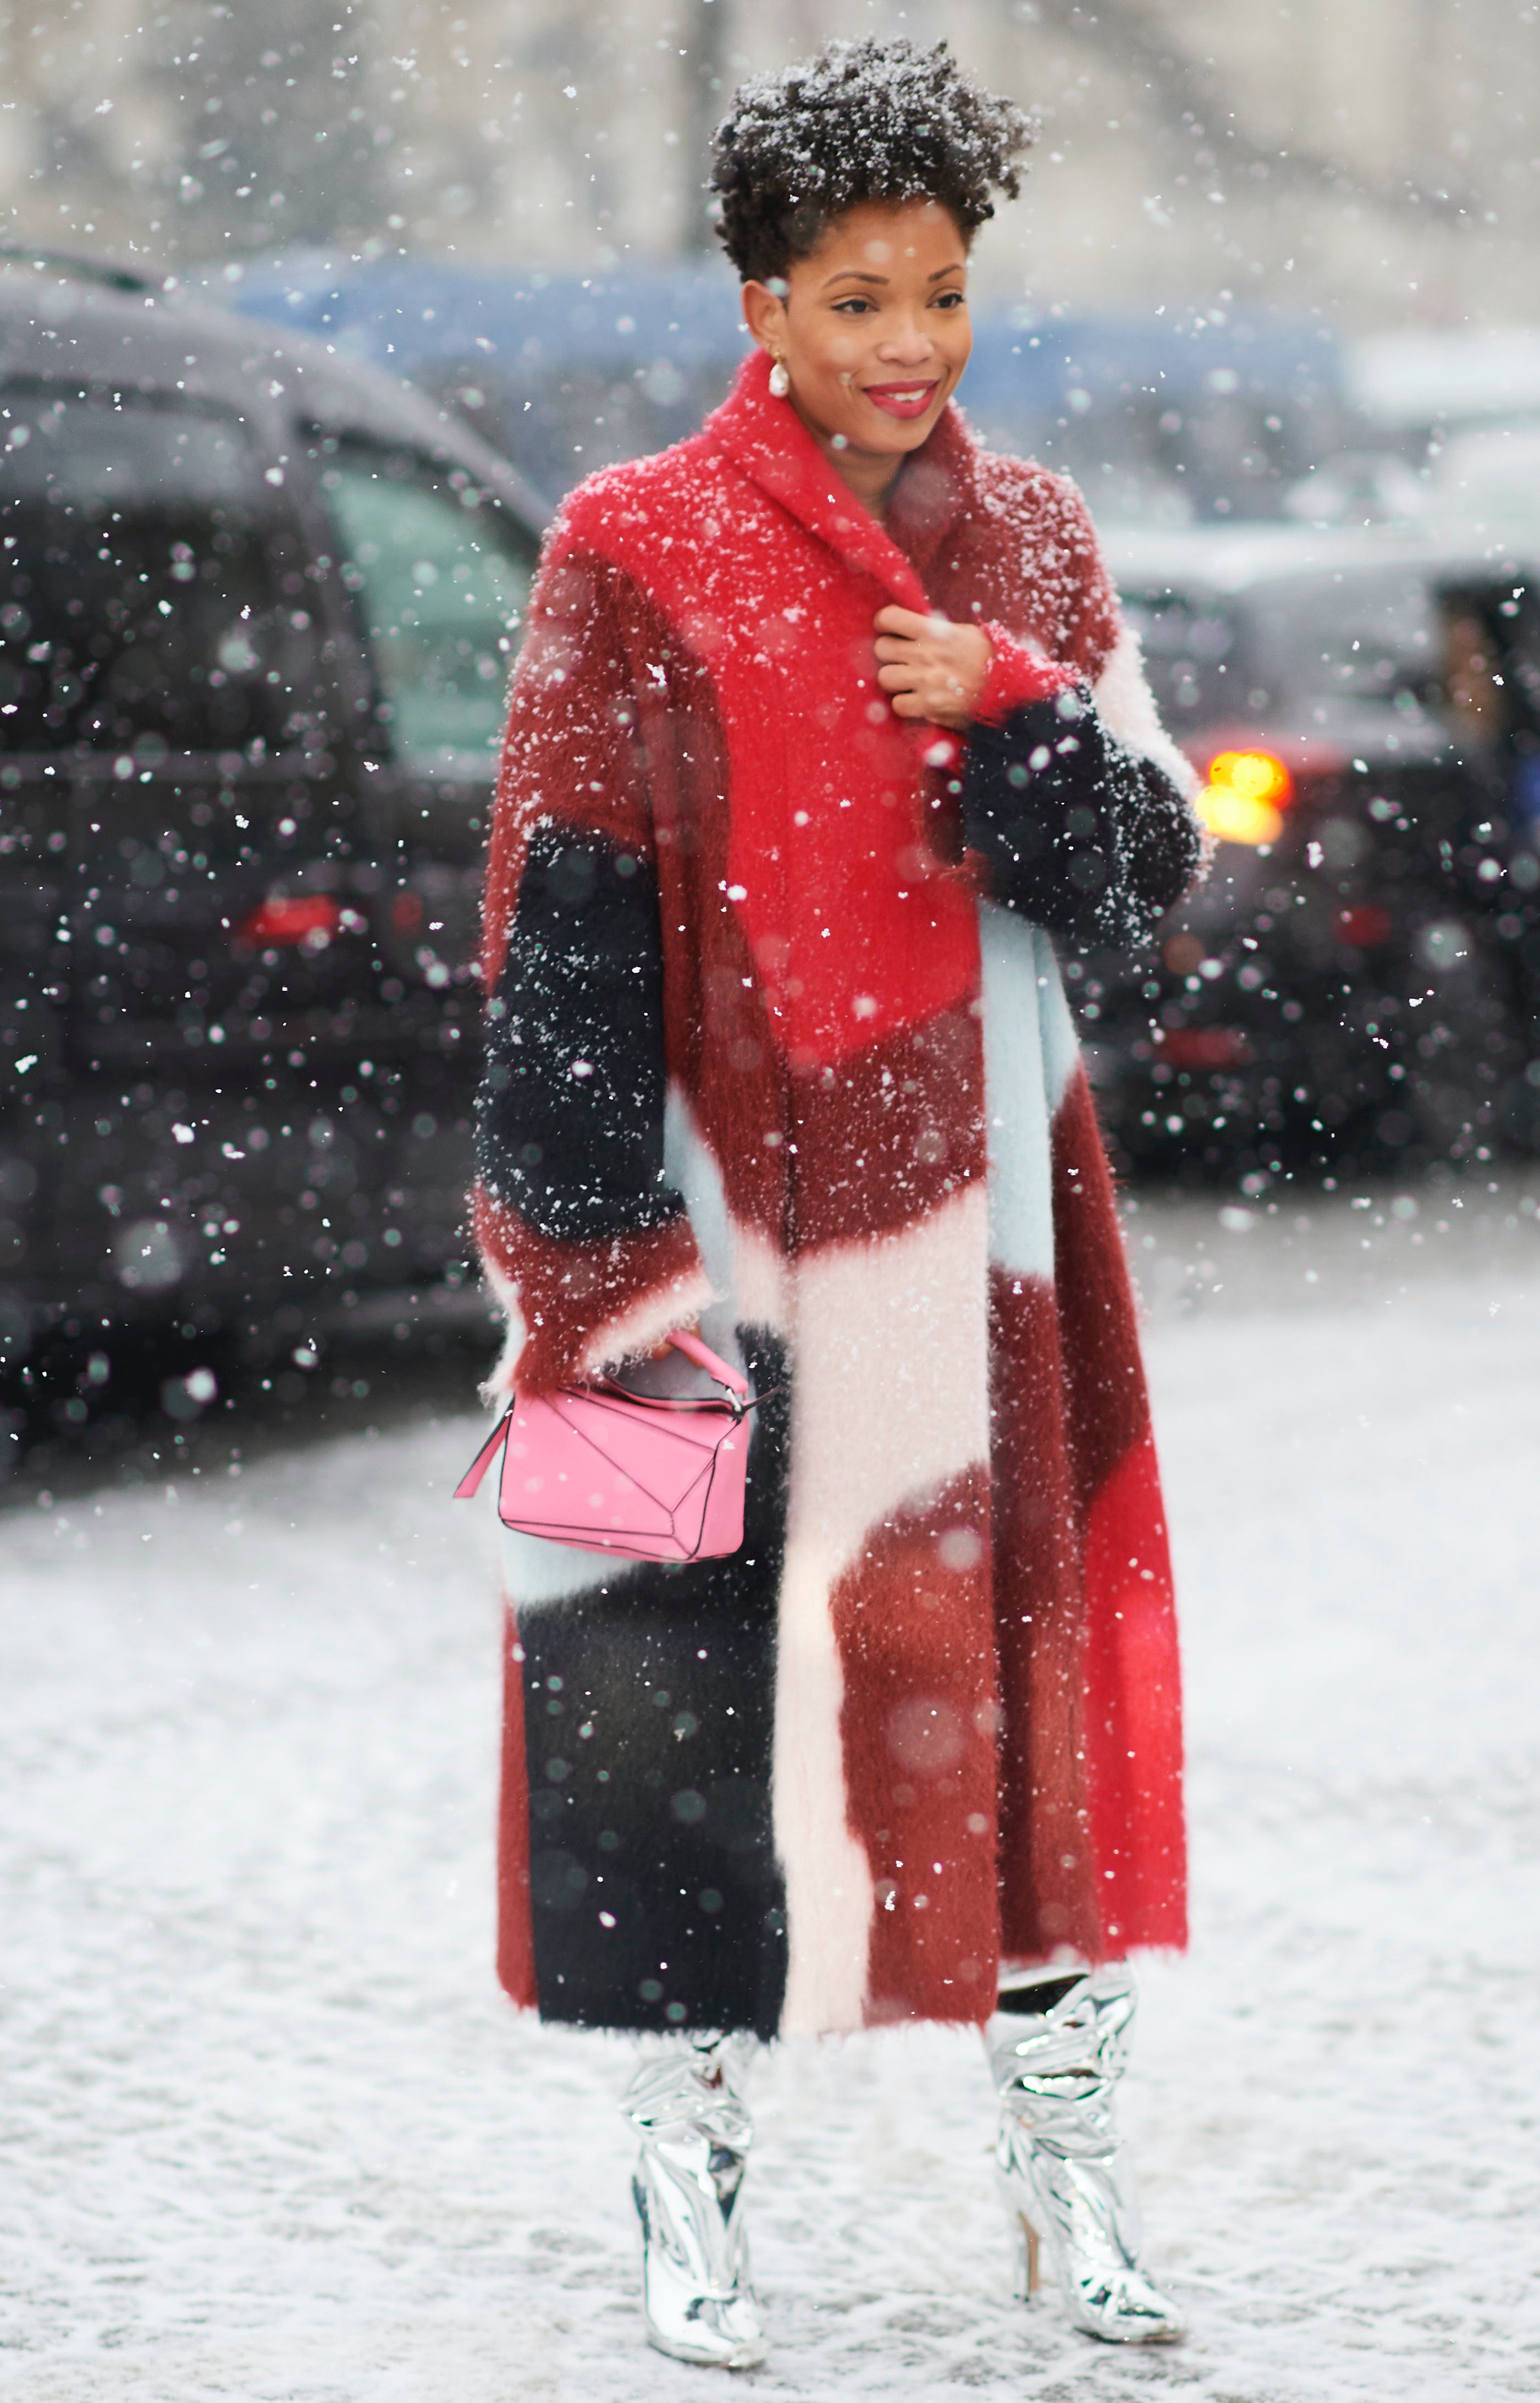 woman wearing a red oversize coat and silver boots in the snow